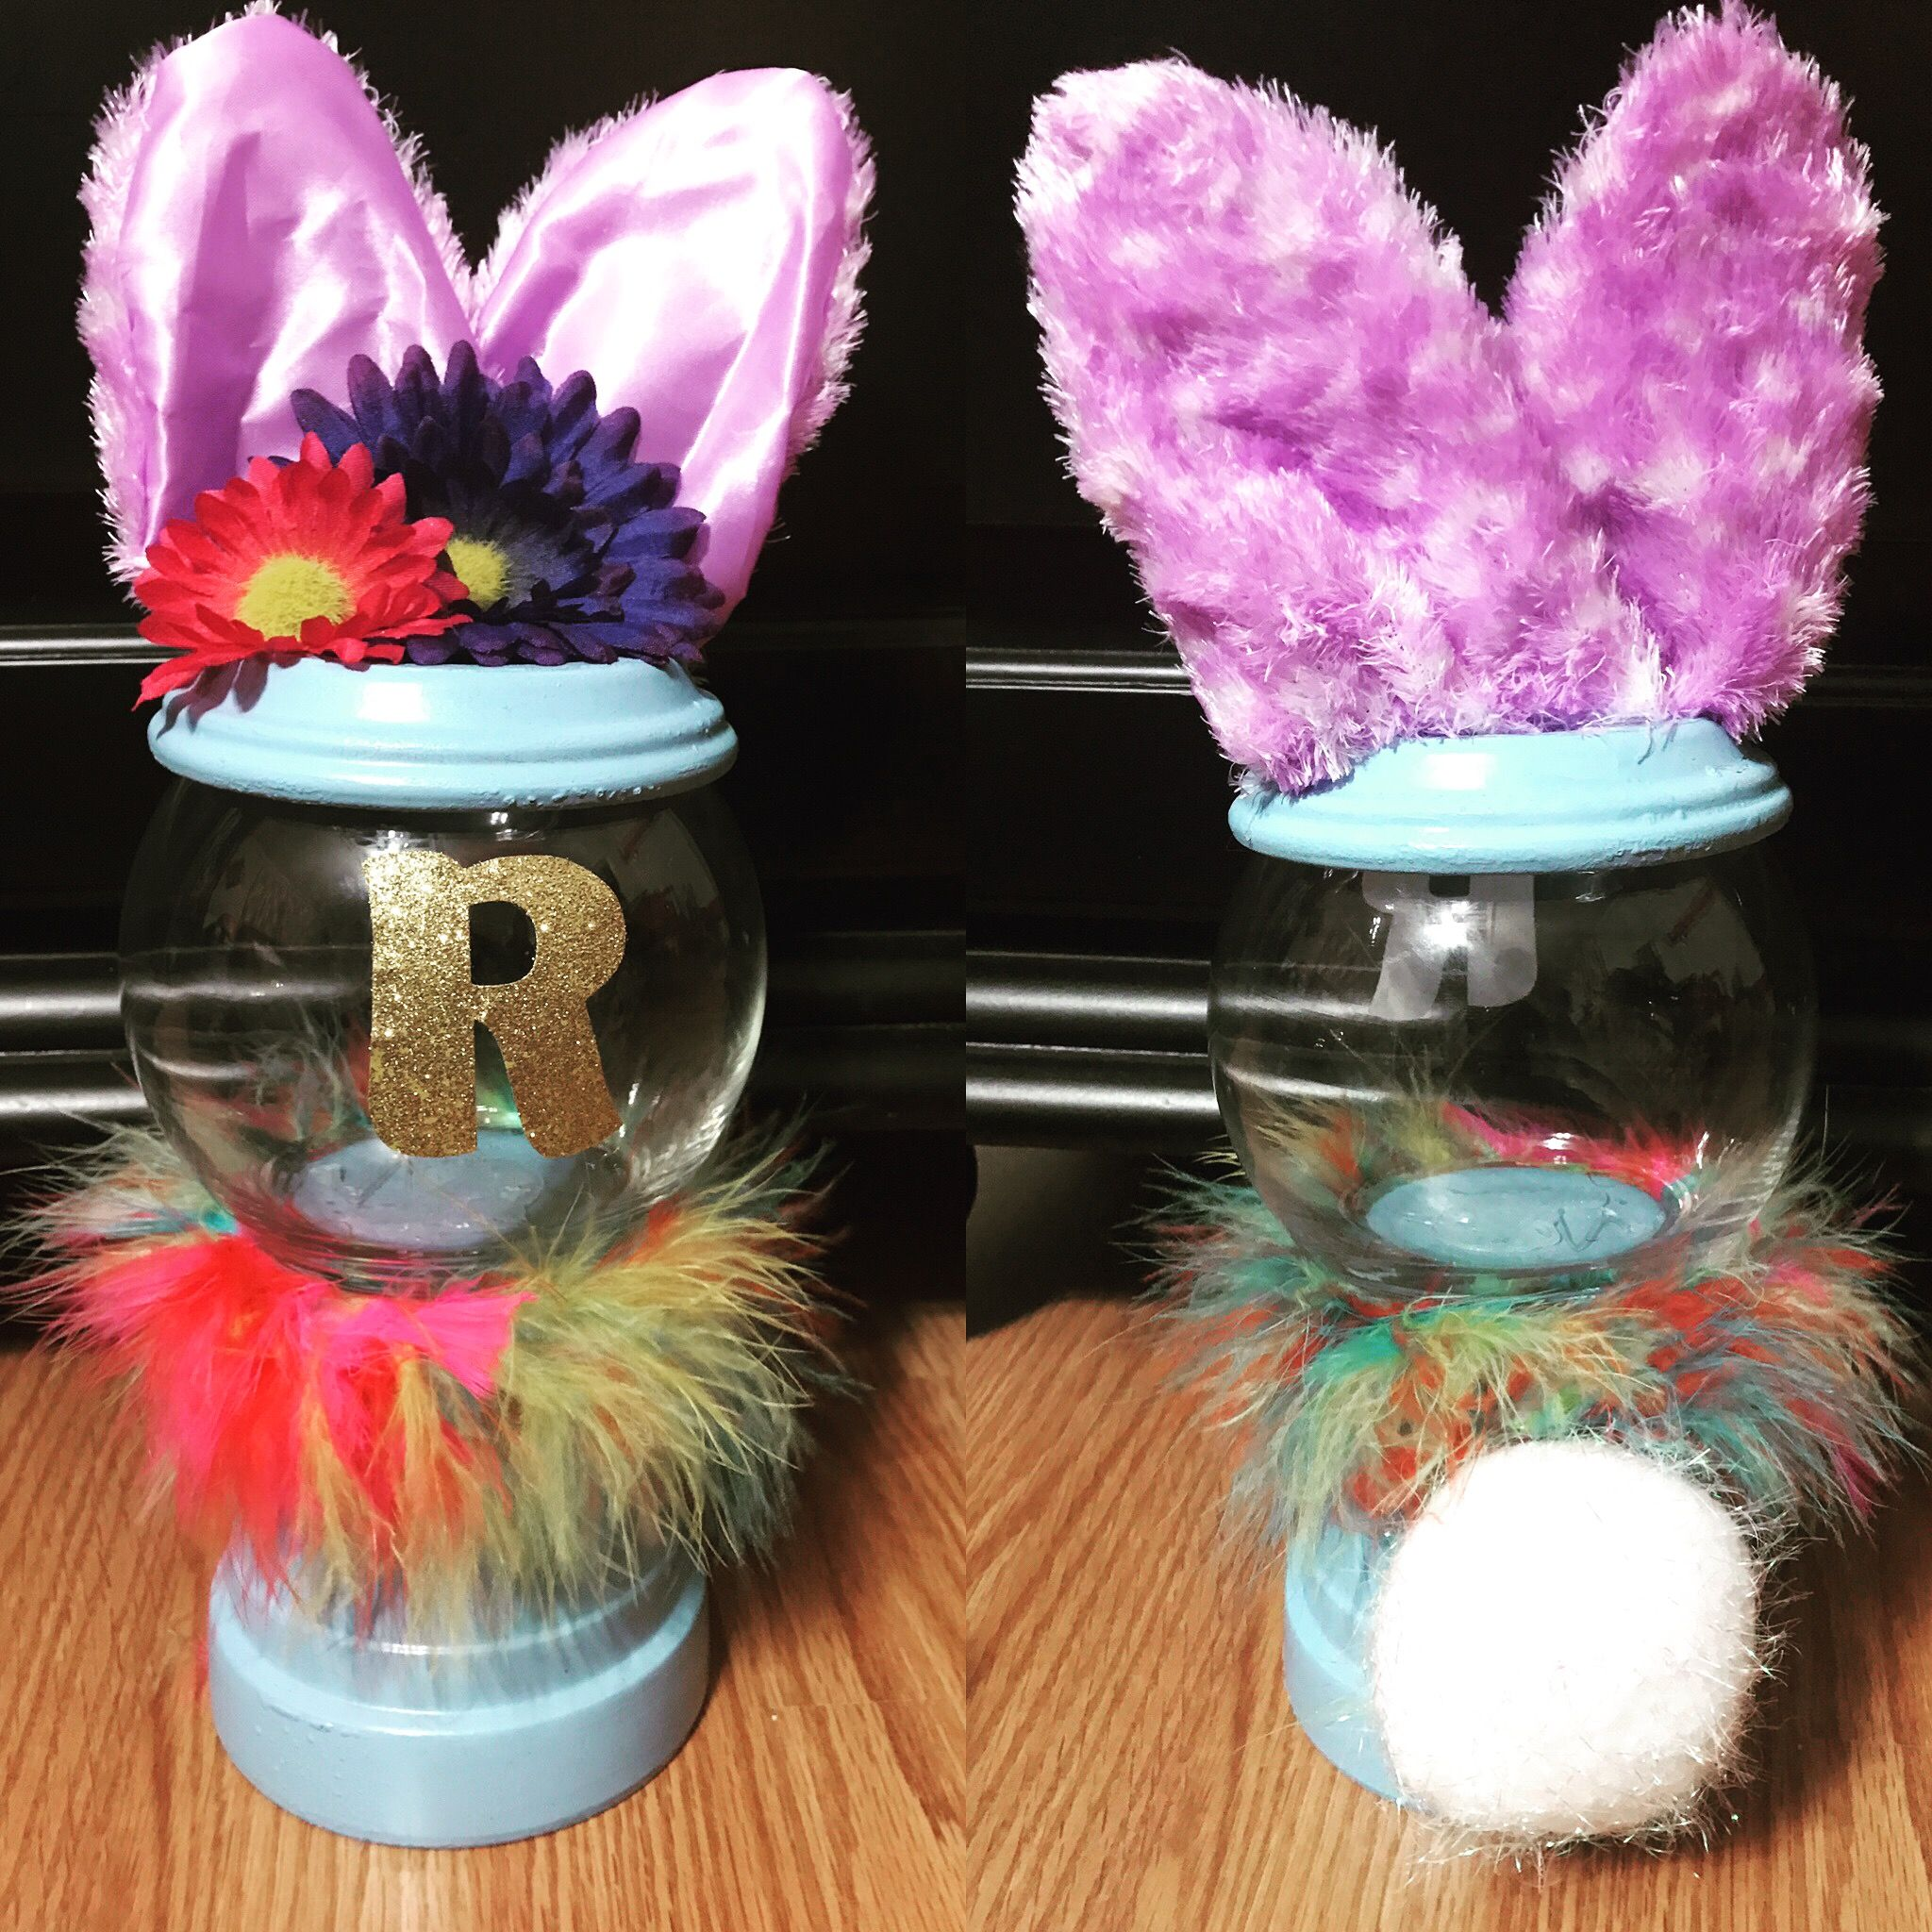 Home Craft Ideas Easter Bunny Flower Pot Craft Flower Pot: Easter Bunny Inspired Gumball Machine With Clay Pots